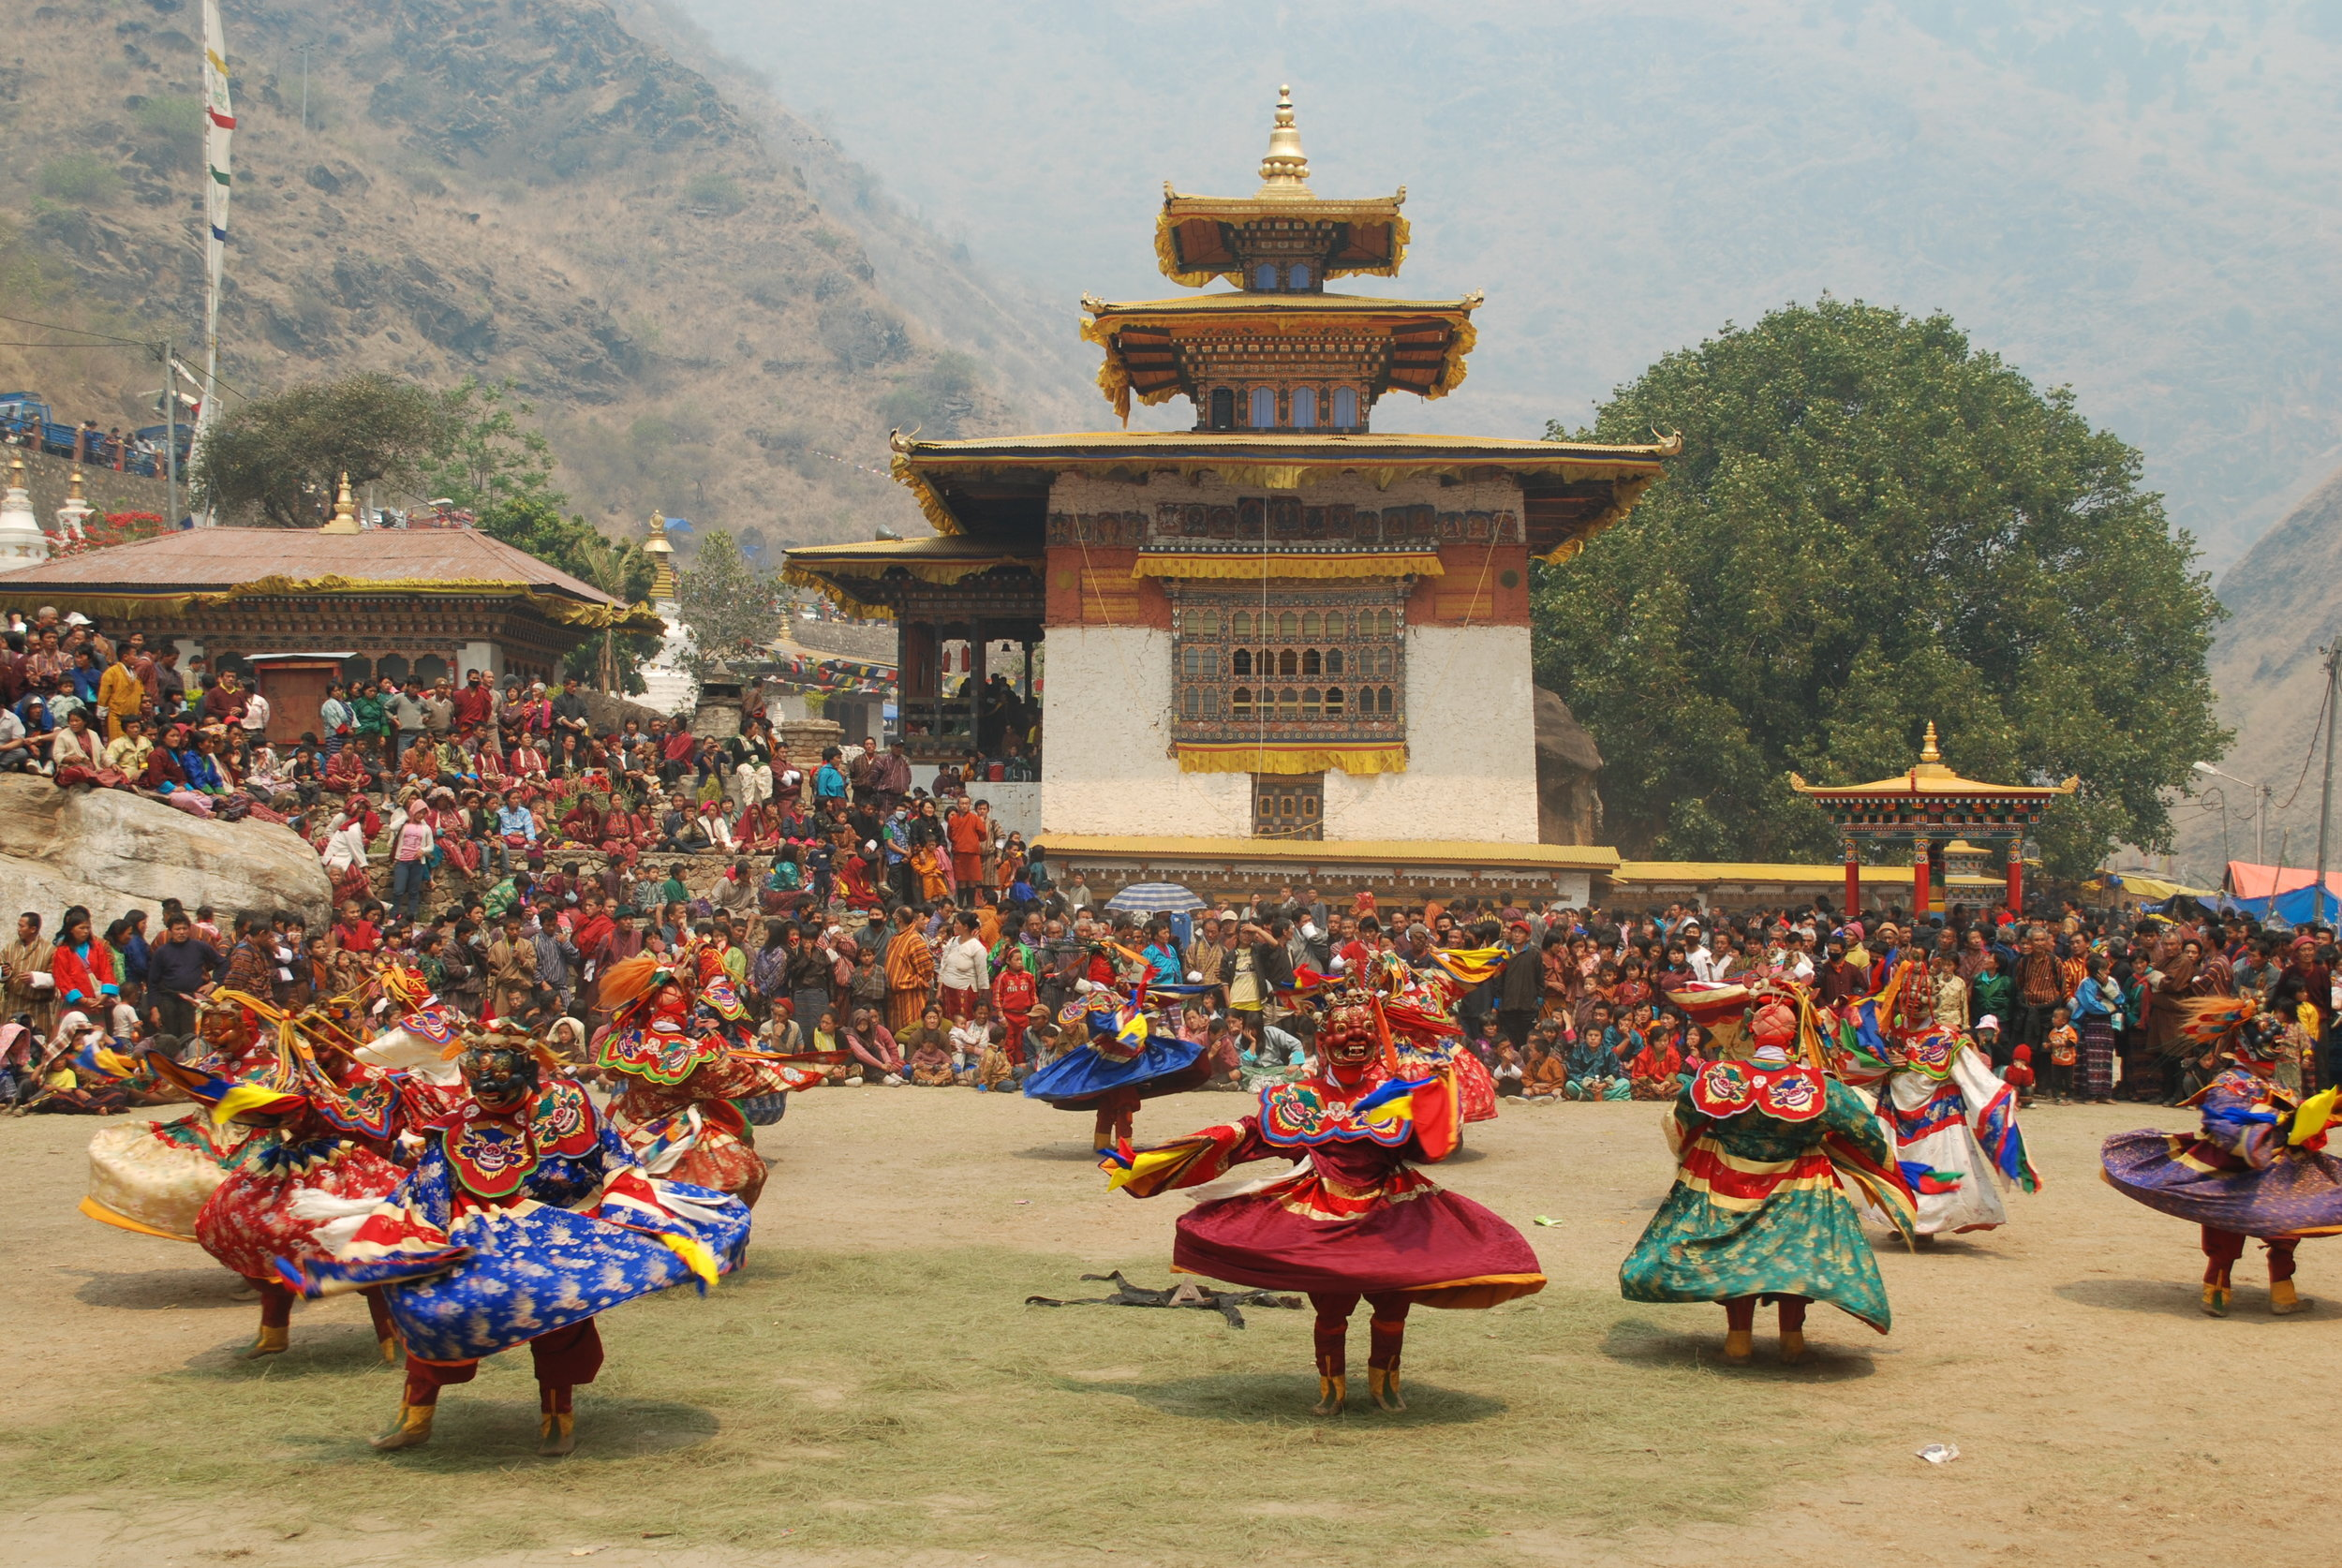 Tsechus  are one of the most popular Buddhist religious festivals in Bhutan. Different valleys and different monasteries host their own annual  Tsechu , lasting for 3-5 days